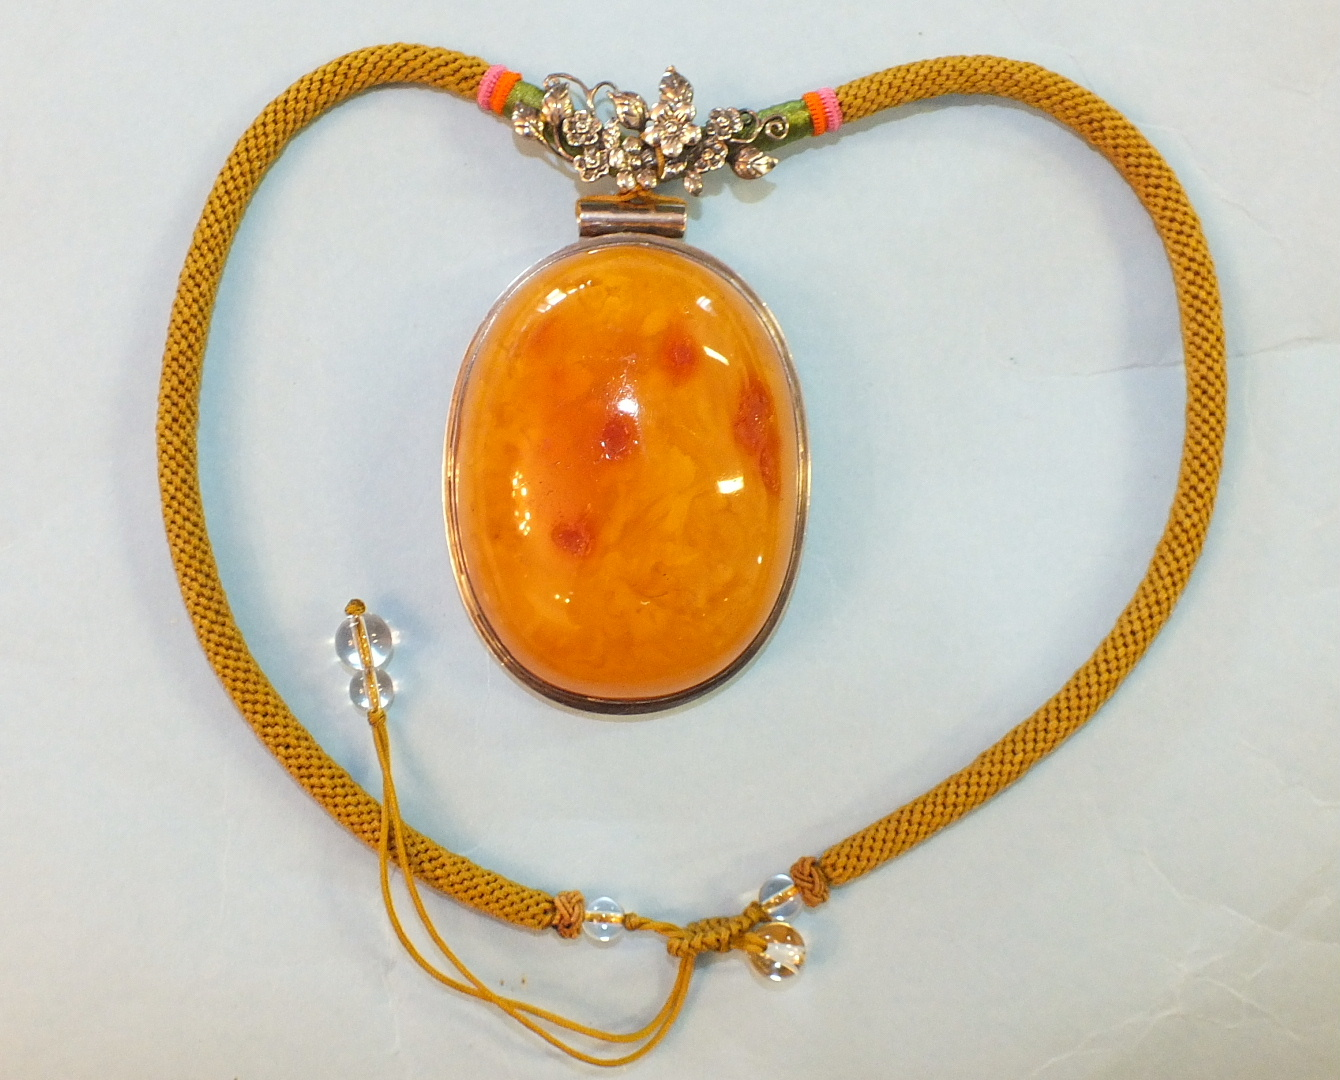 Lot 216 - A large butterscotch amber pendant mounted in white metal on plaited necklet with white metal floral